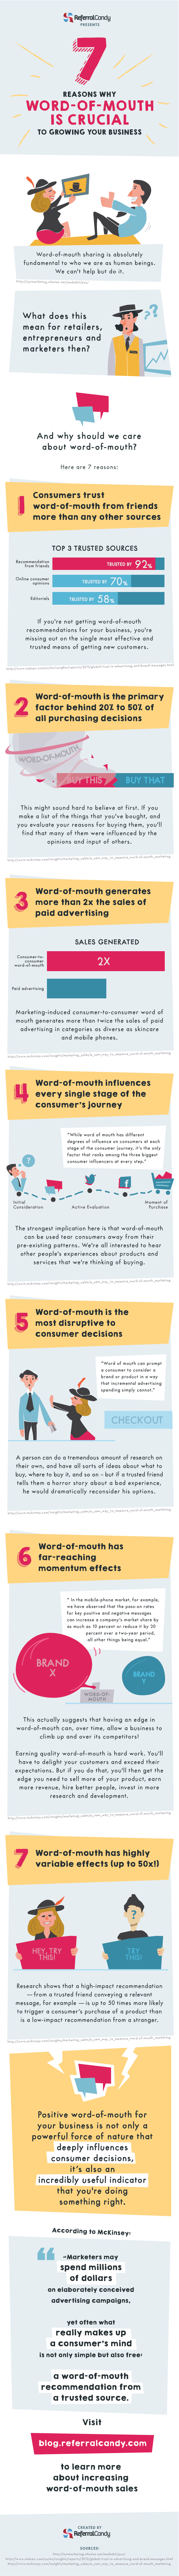 Word-of-Mouth-Influences-Sales